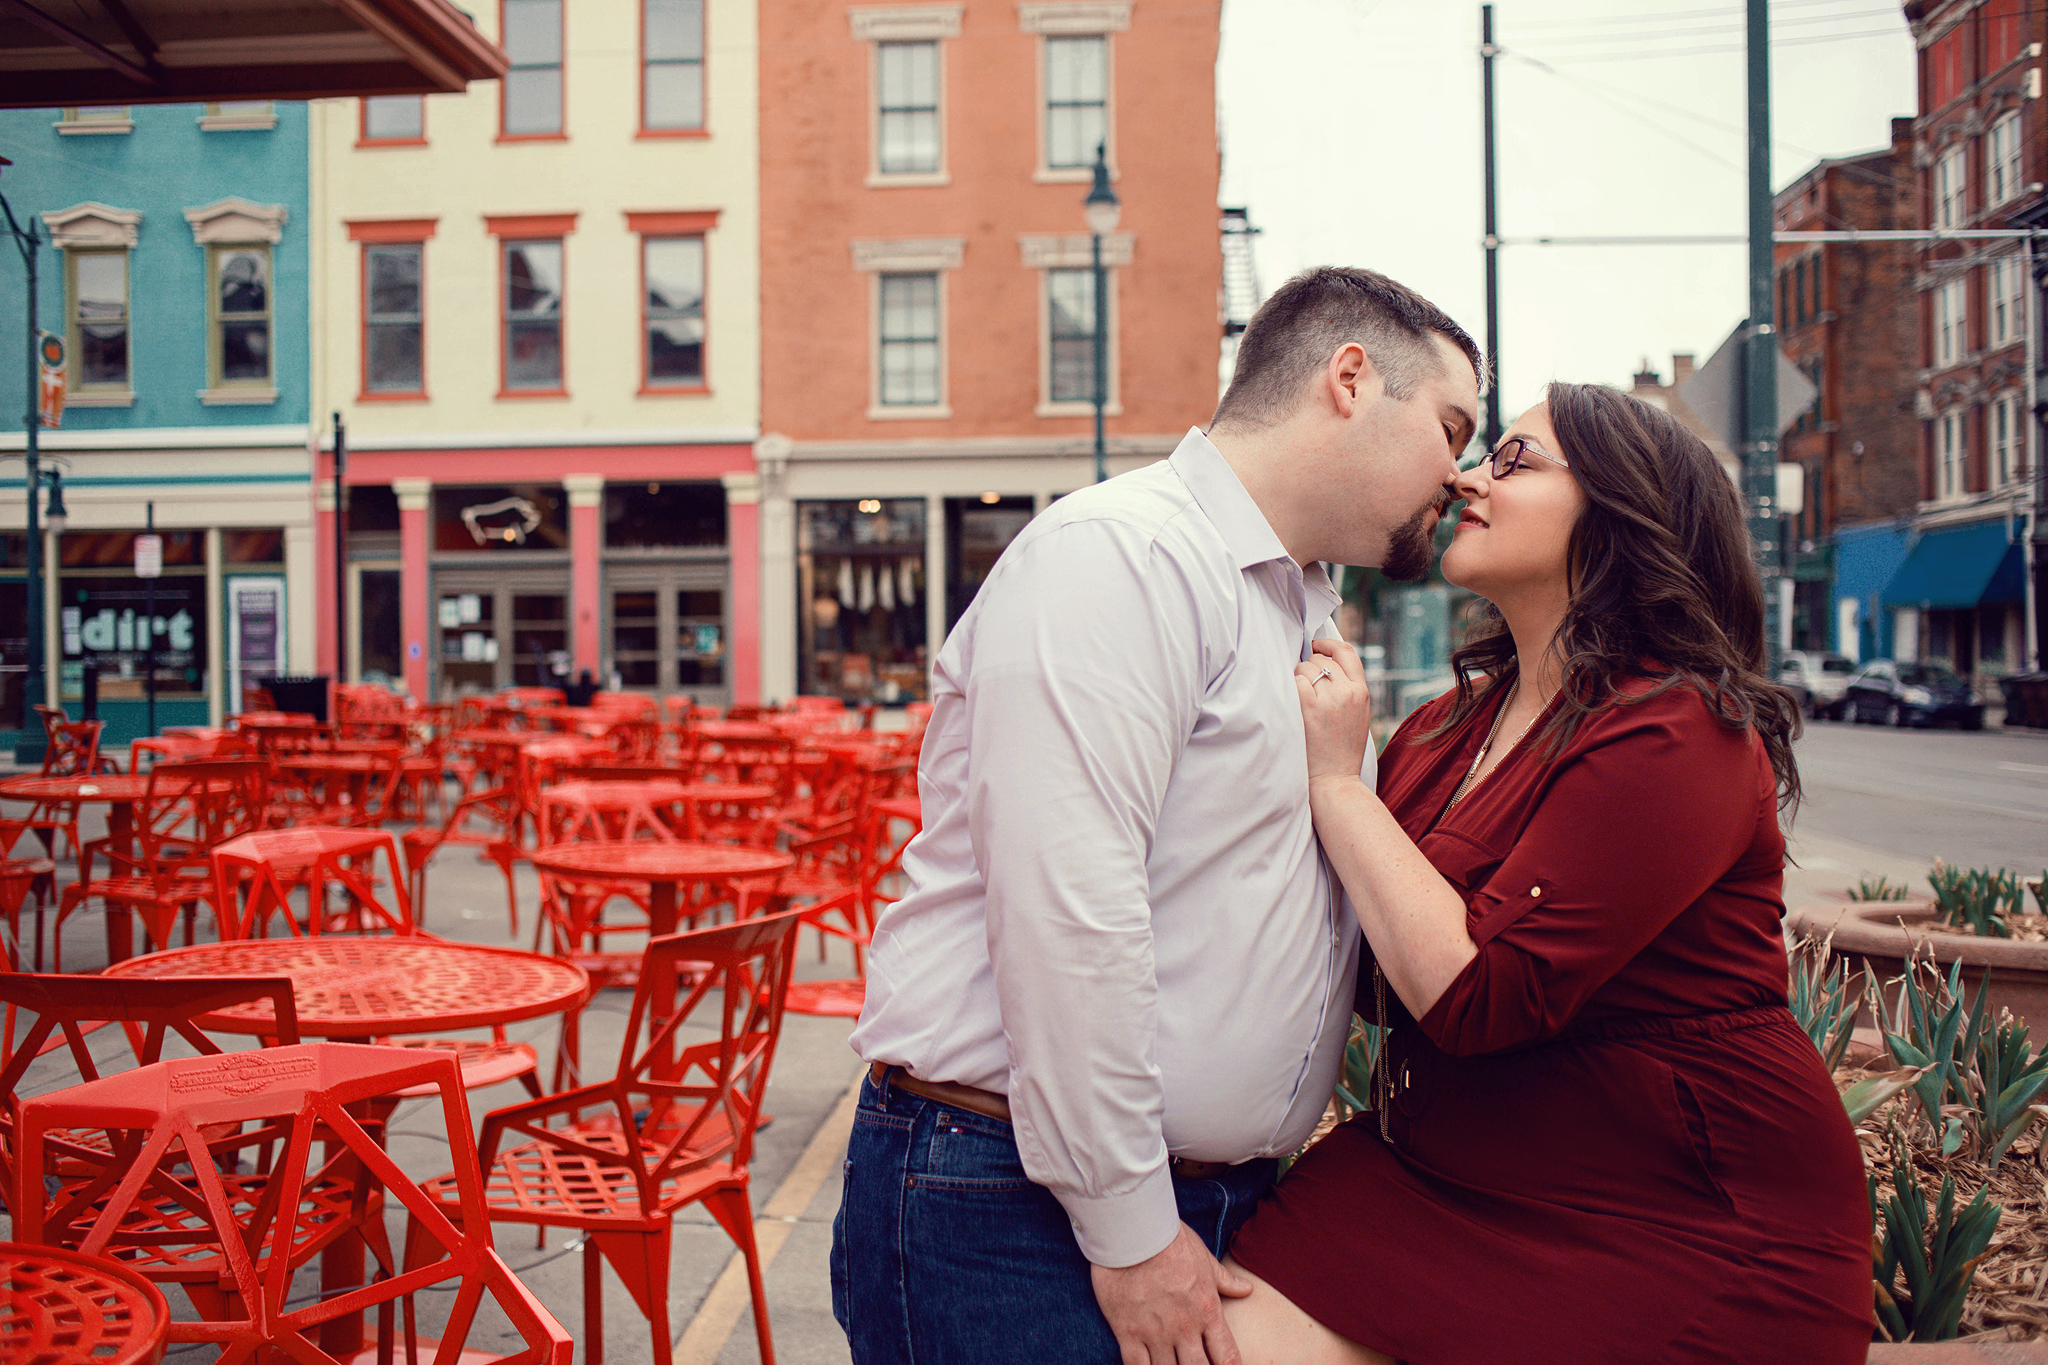 Cincinnati-Dayton-OH-Engagement-Session-Traveling-Wedding-Photographer-6.jpg